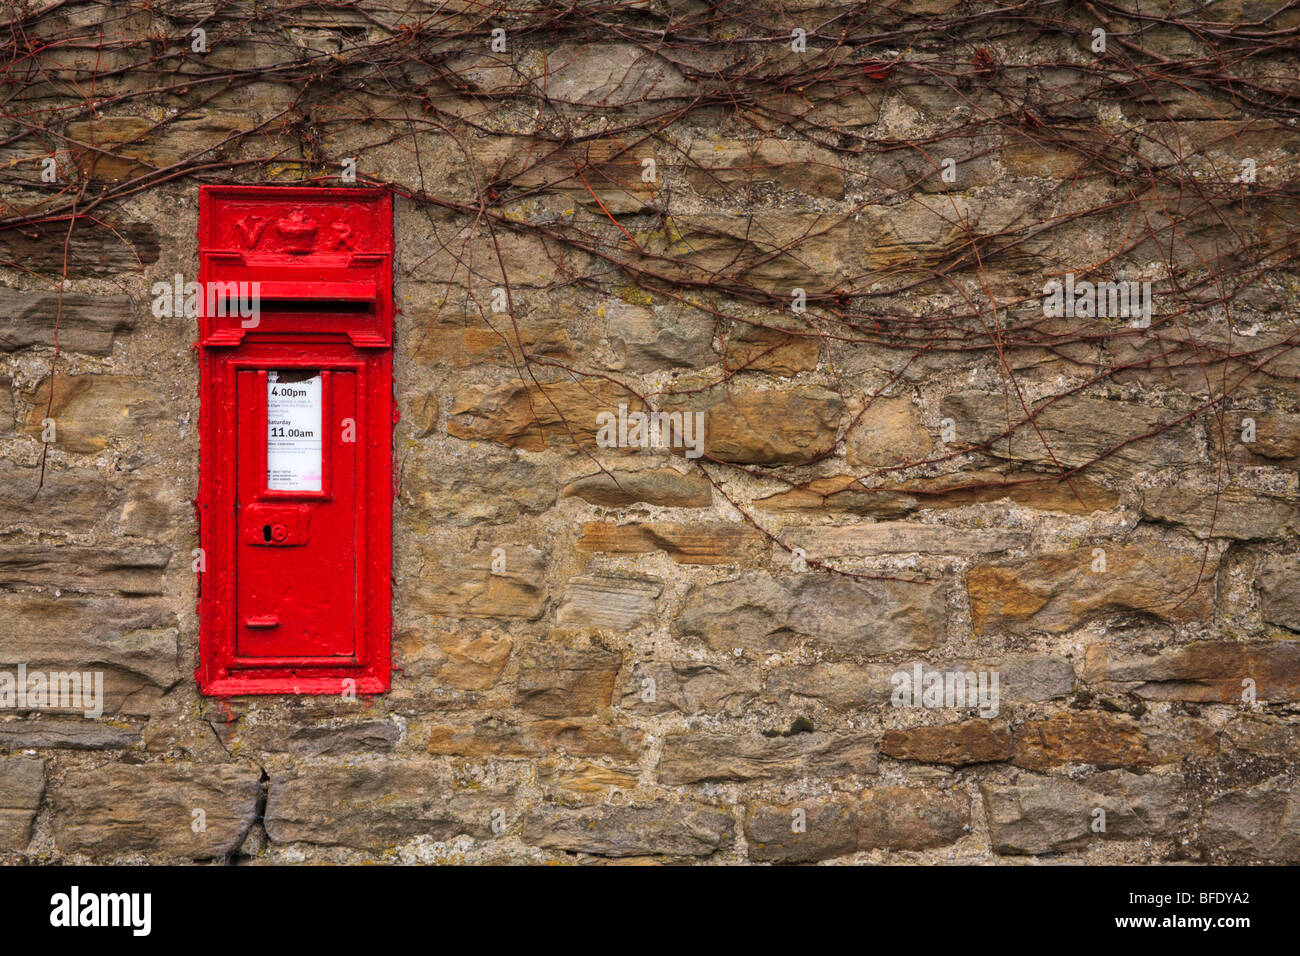 Post box on stone wall of a house in Thwaite, Swaledale Yorkshire Dales, England UK waiting for Christmas mail. - Stock Image